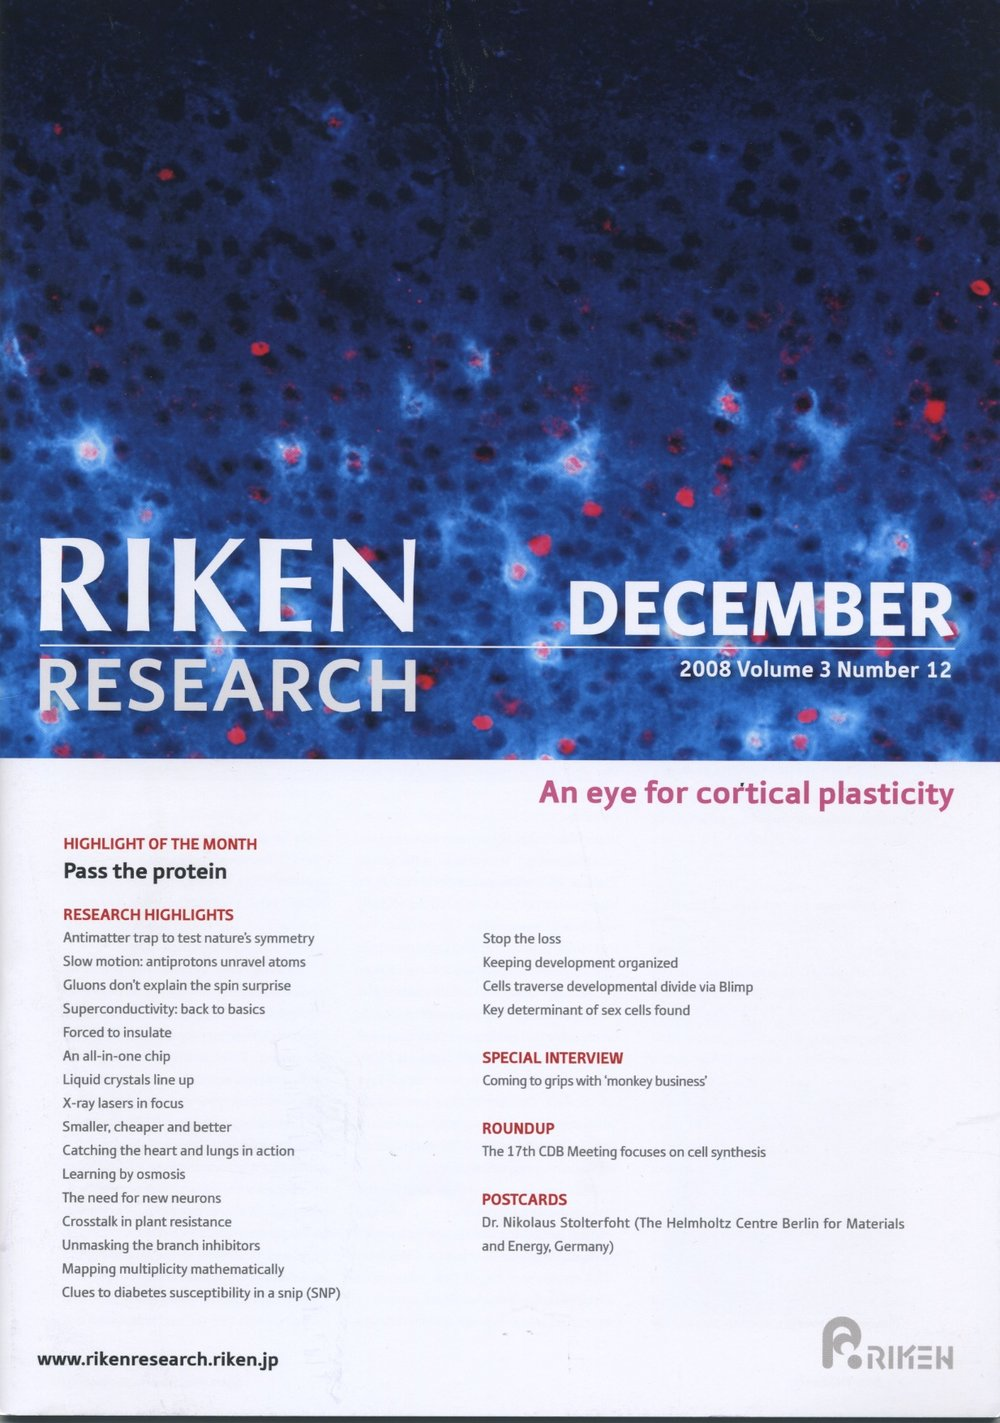 RIKEN Rsch Dec 08 cover.jpeg